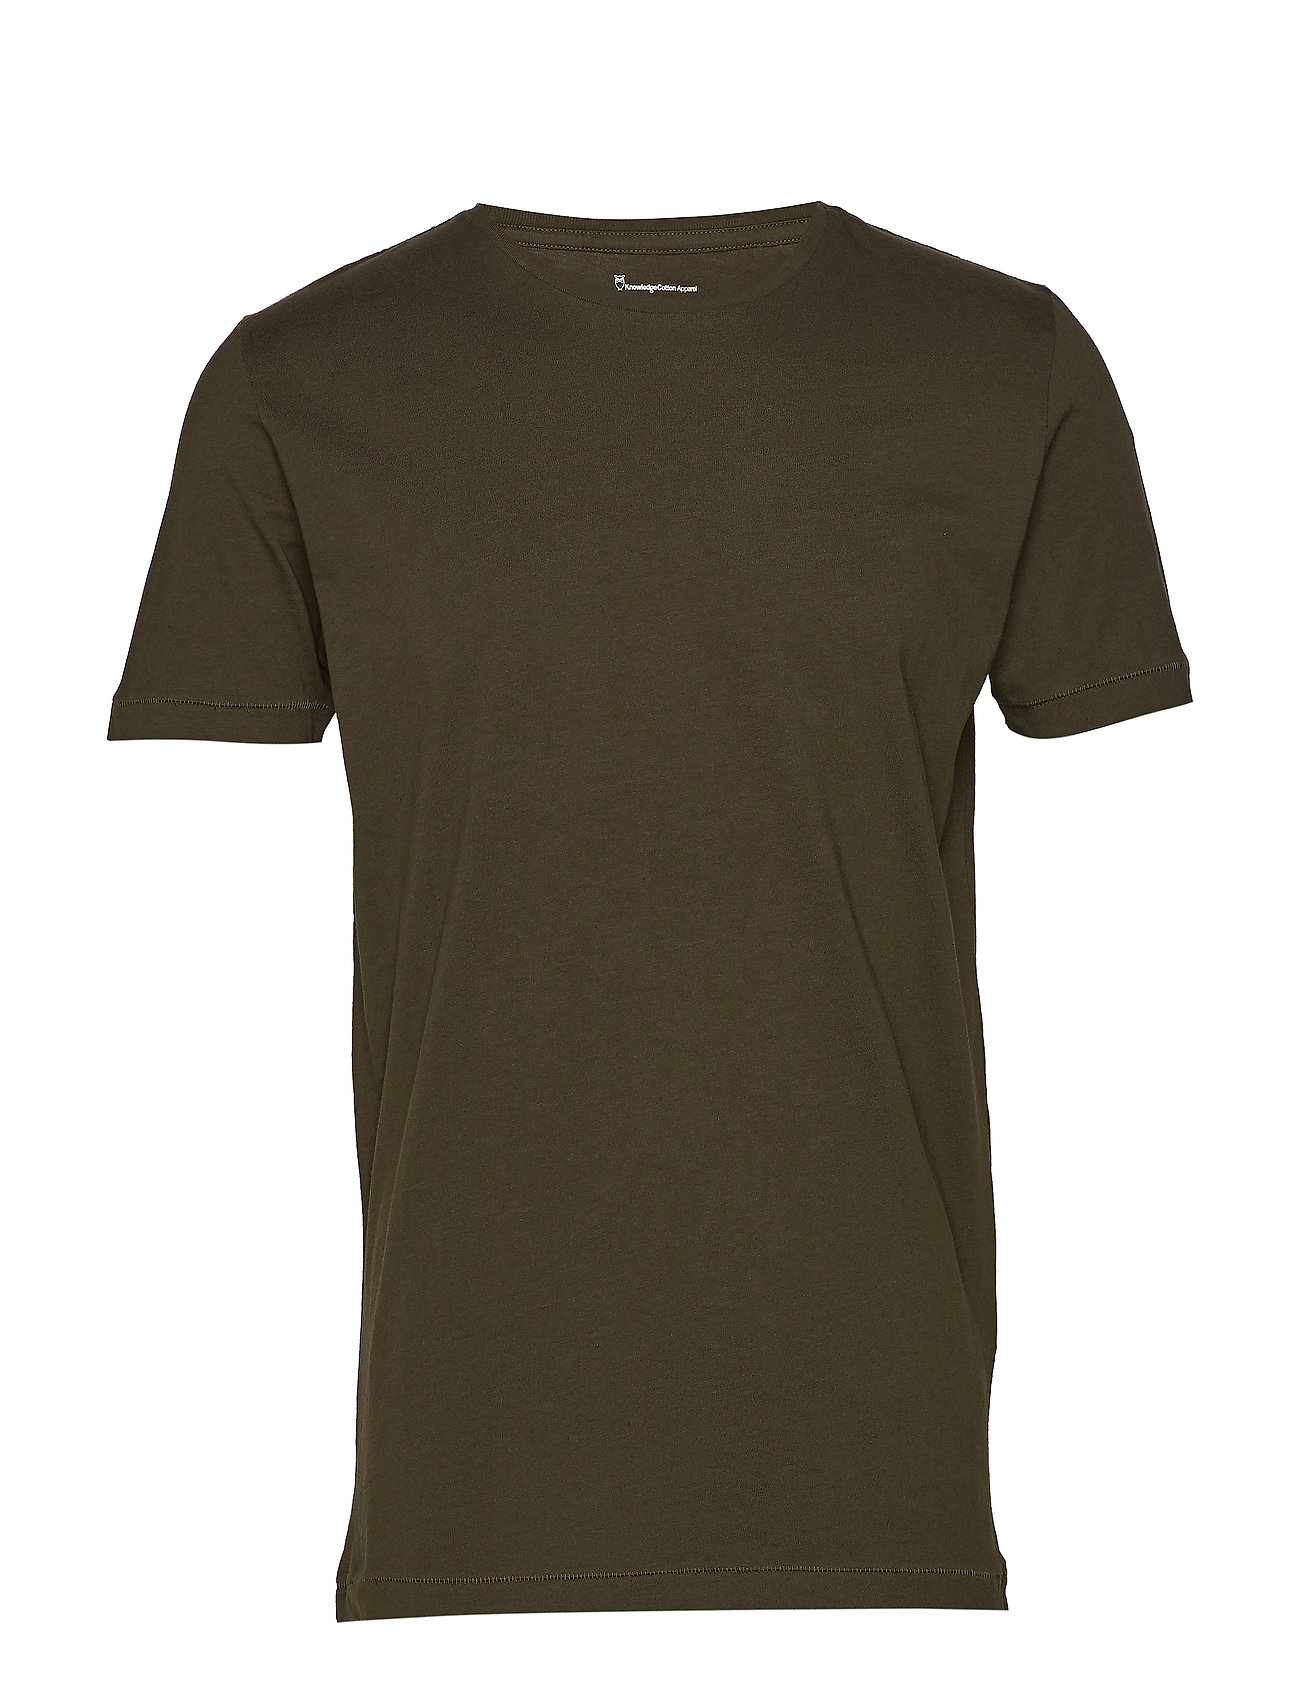 Knowledge Cotton Apparel ALDER basic tee - GOTS/Vegan - FORREST NIGHT